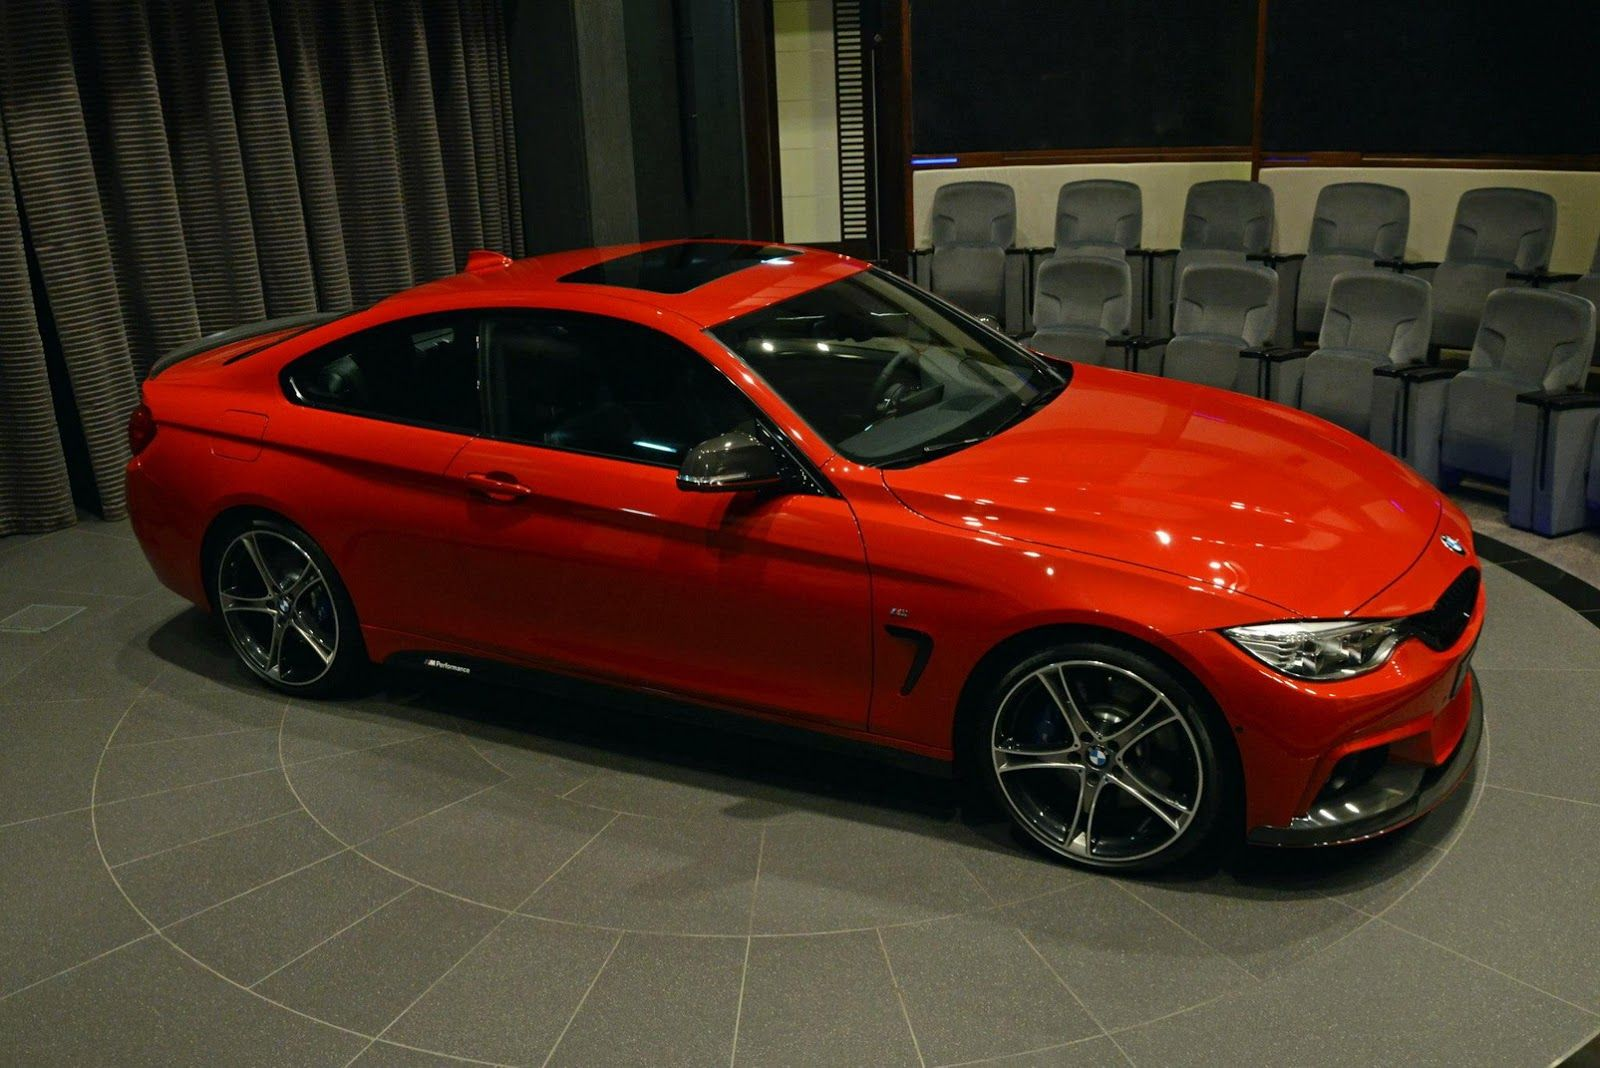 Red Bmw 435i Coupe M Sport Drops By Abu Dhabi Dealership Carscoops Bmw 435i Bmw Coupe